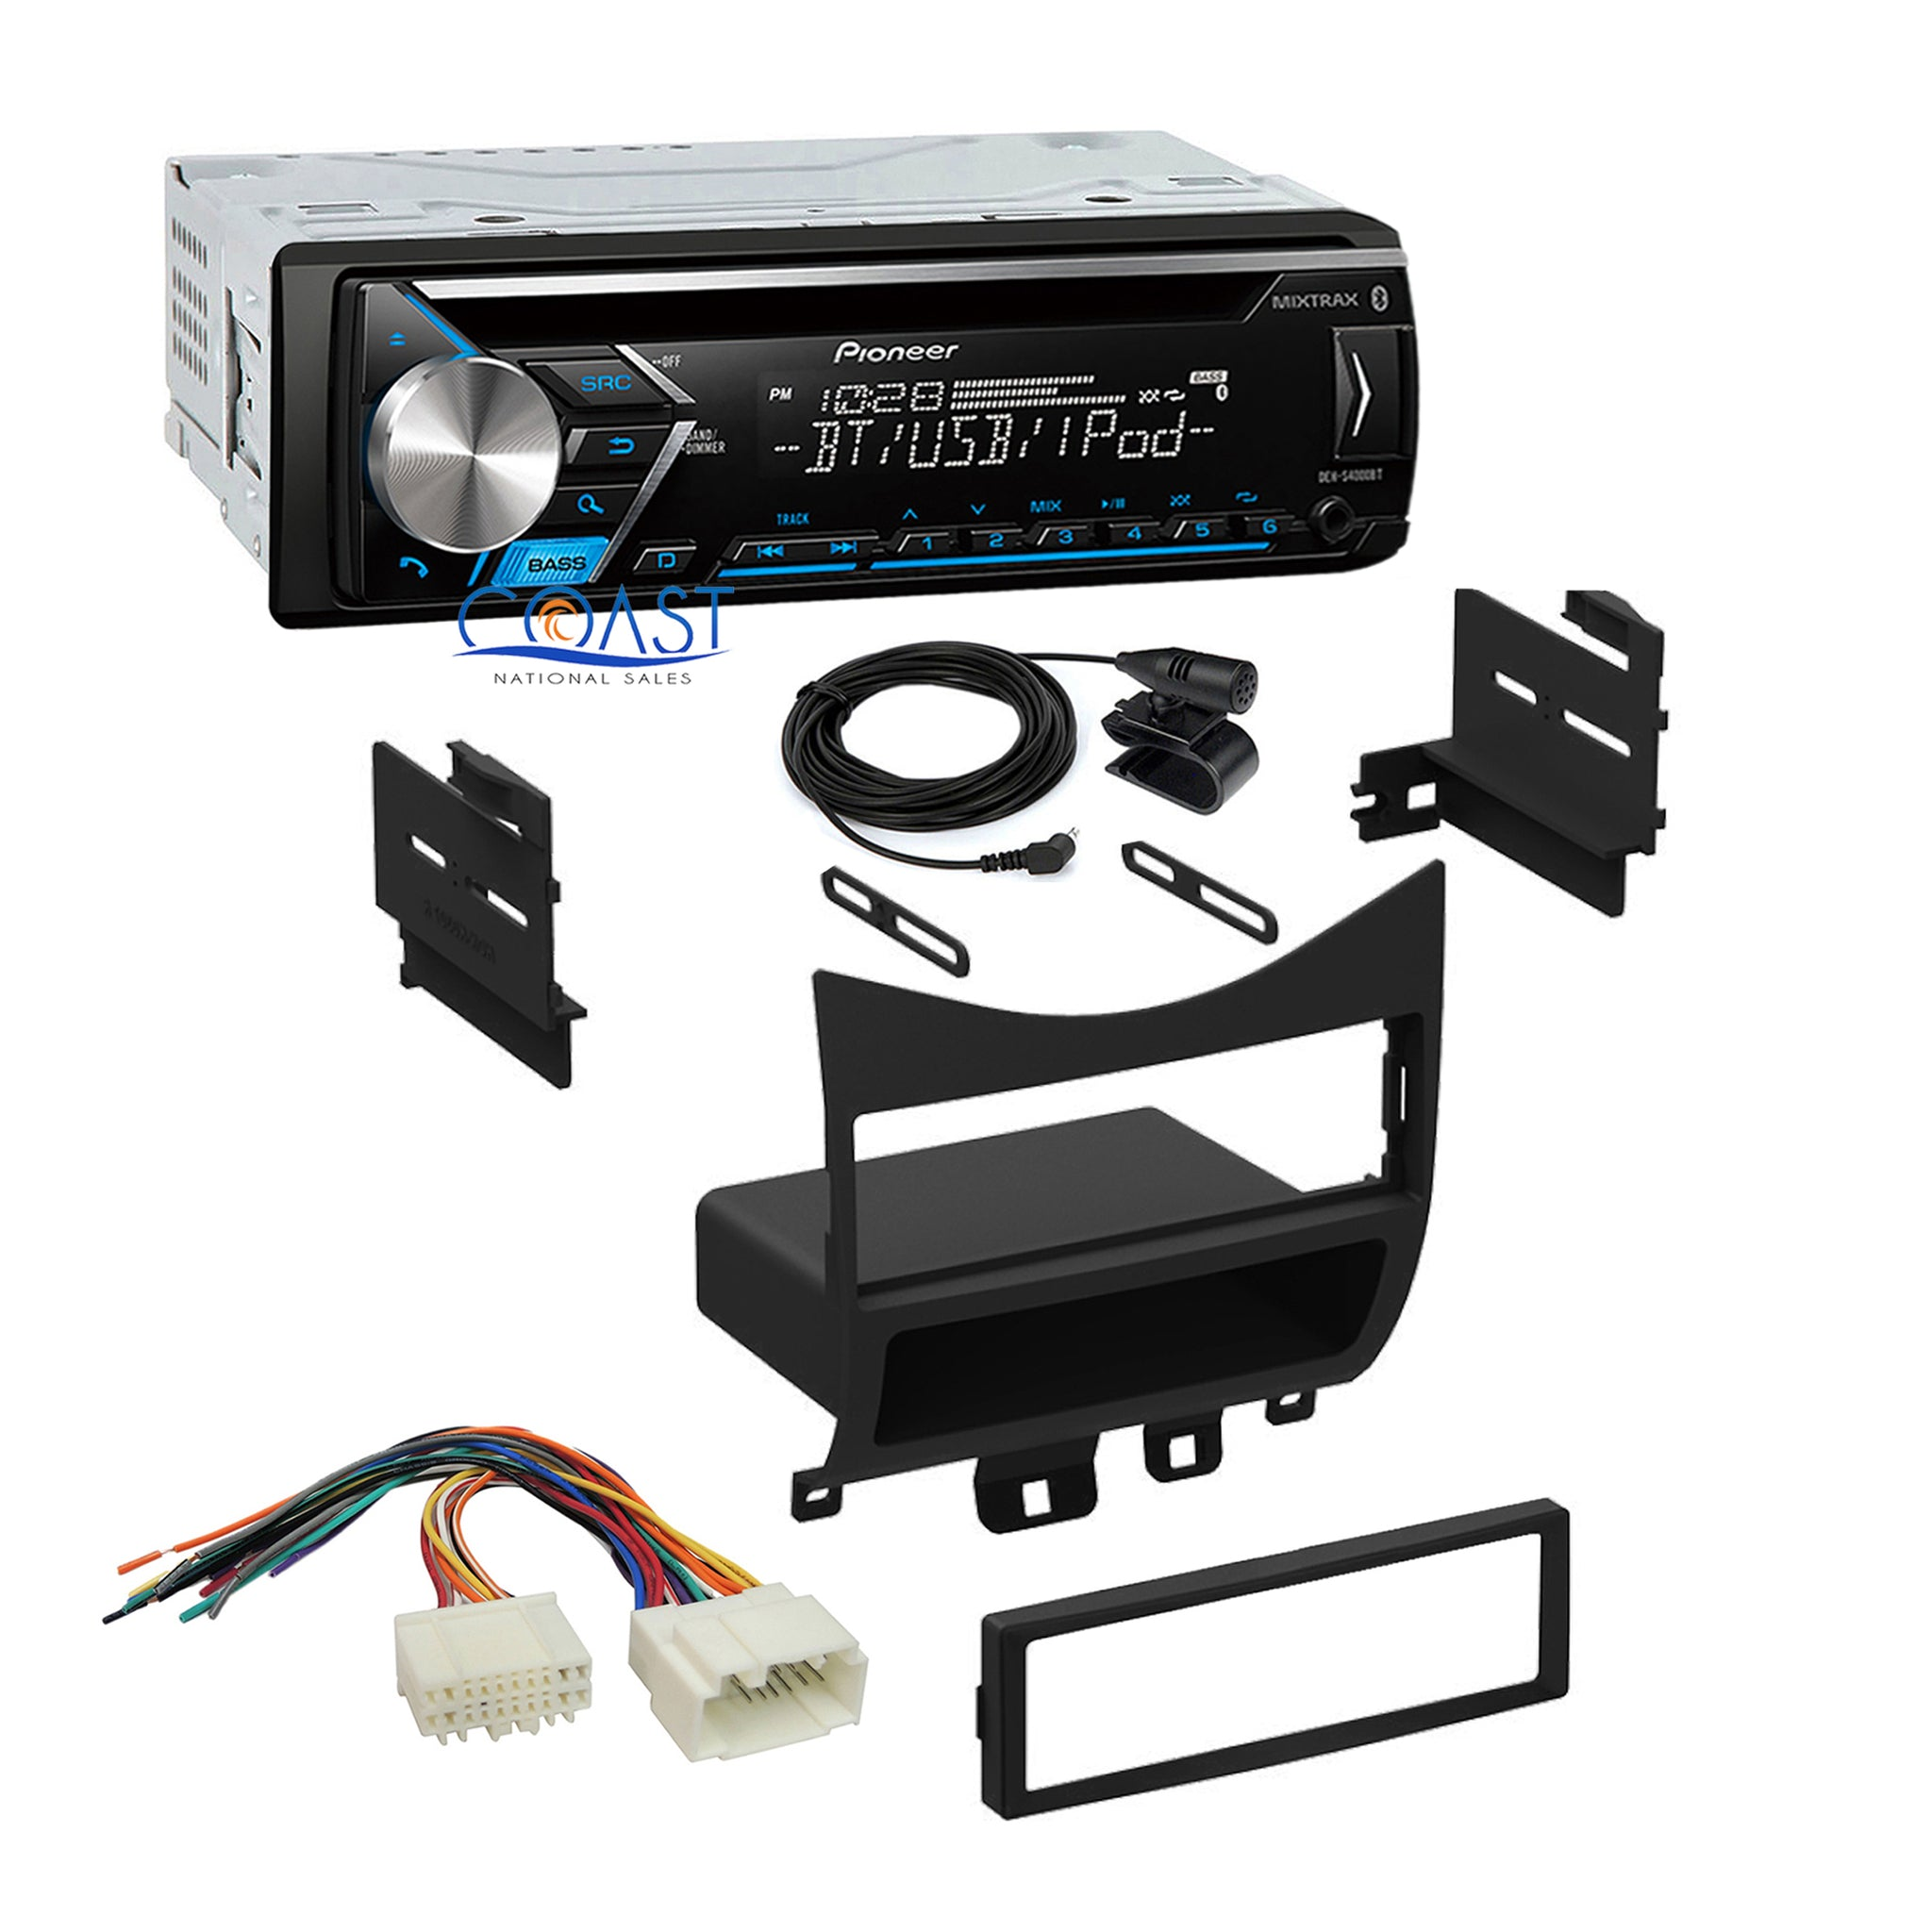 Car Stereo Wiring On Deh 2100 Pioneer Car Stereo Wiring Diagram